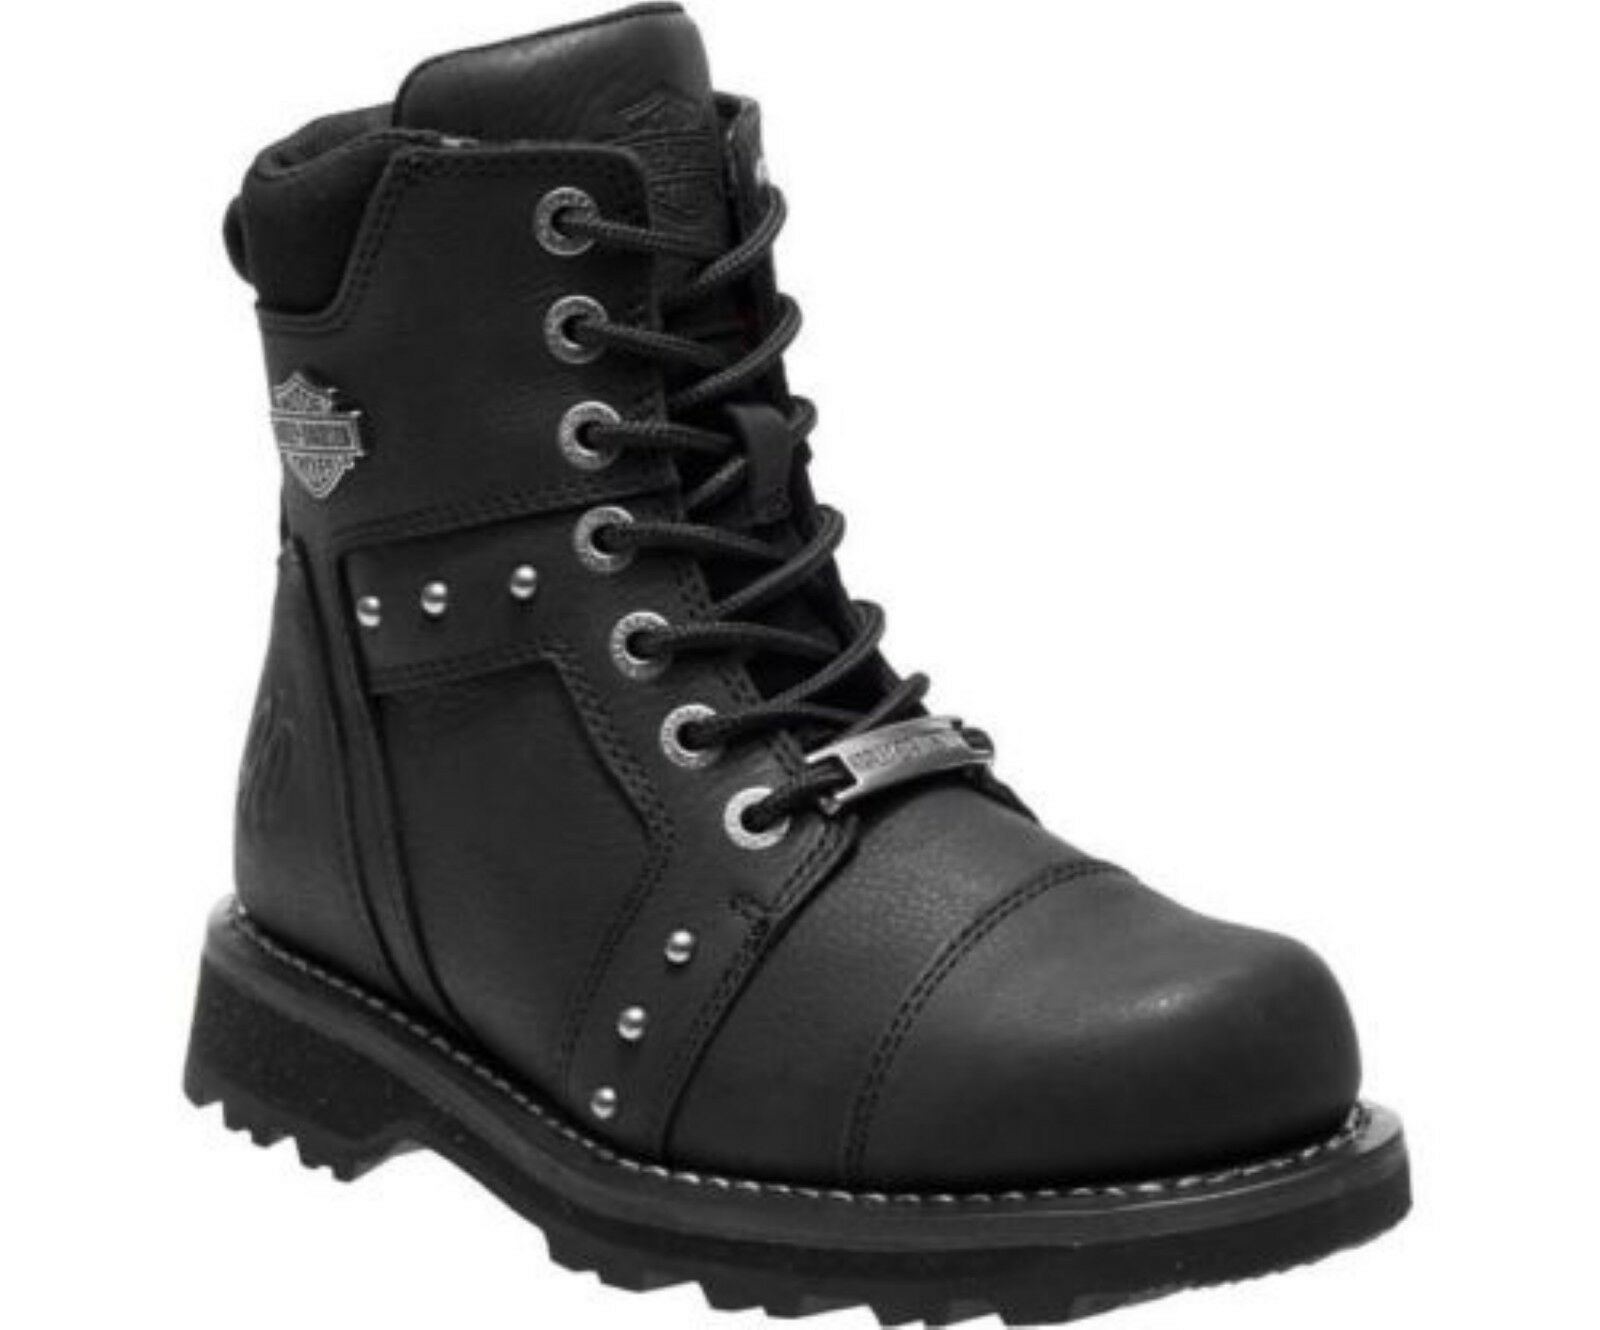 Grandes zapatos con descuento Harley Davidson Oakleigh Ladies Black Leather Biker Boots Studded Lightweight